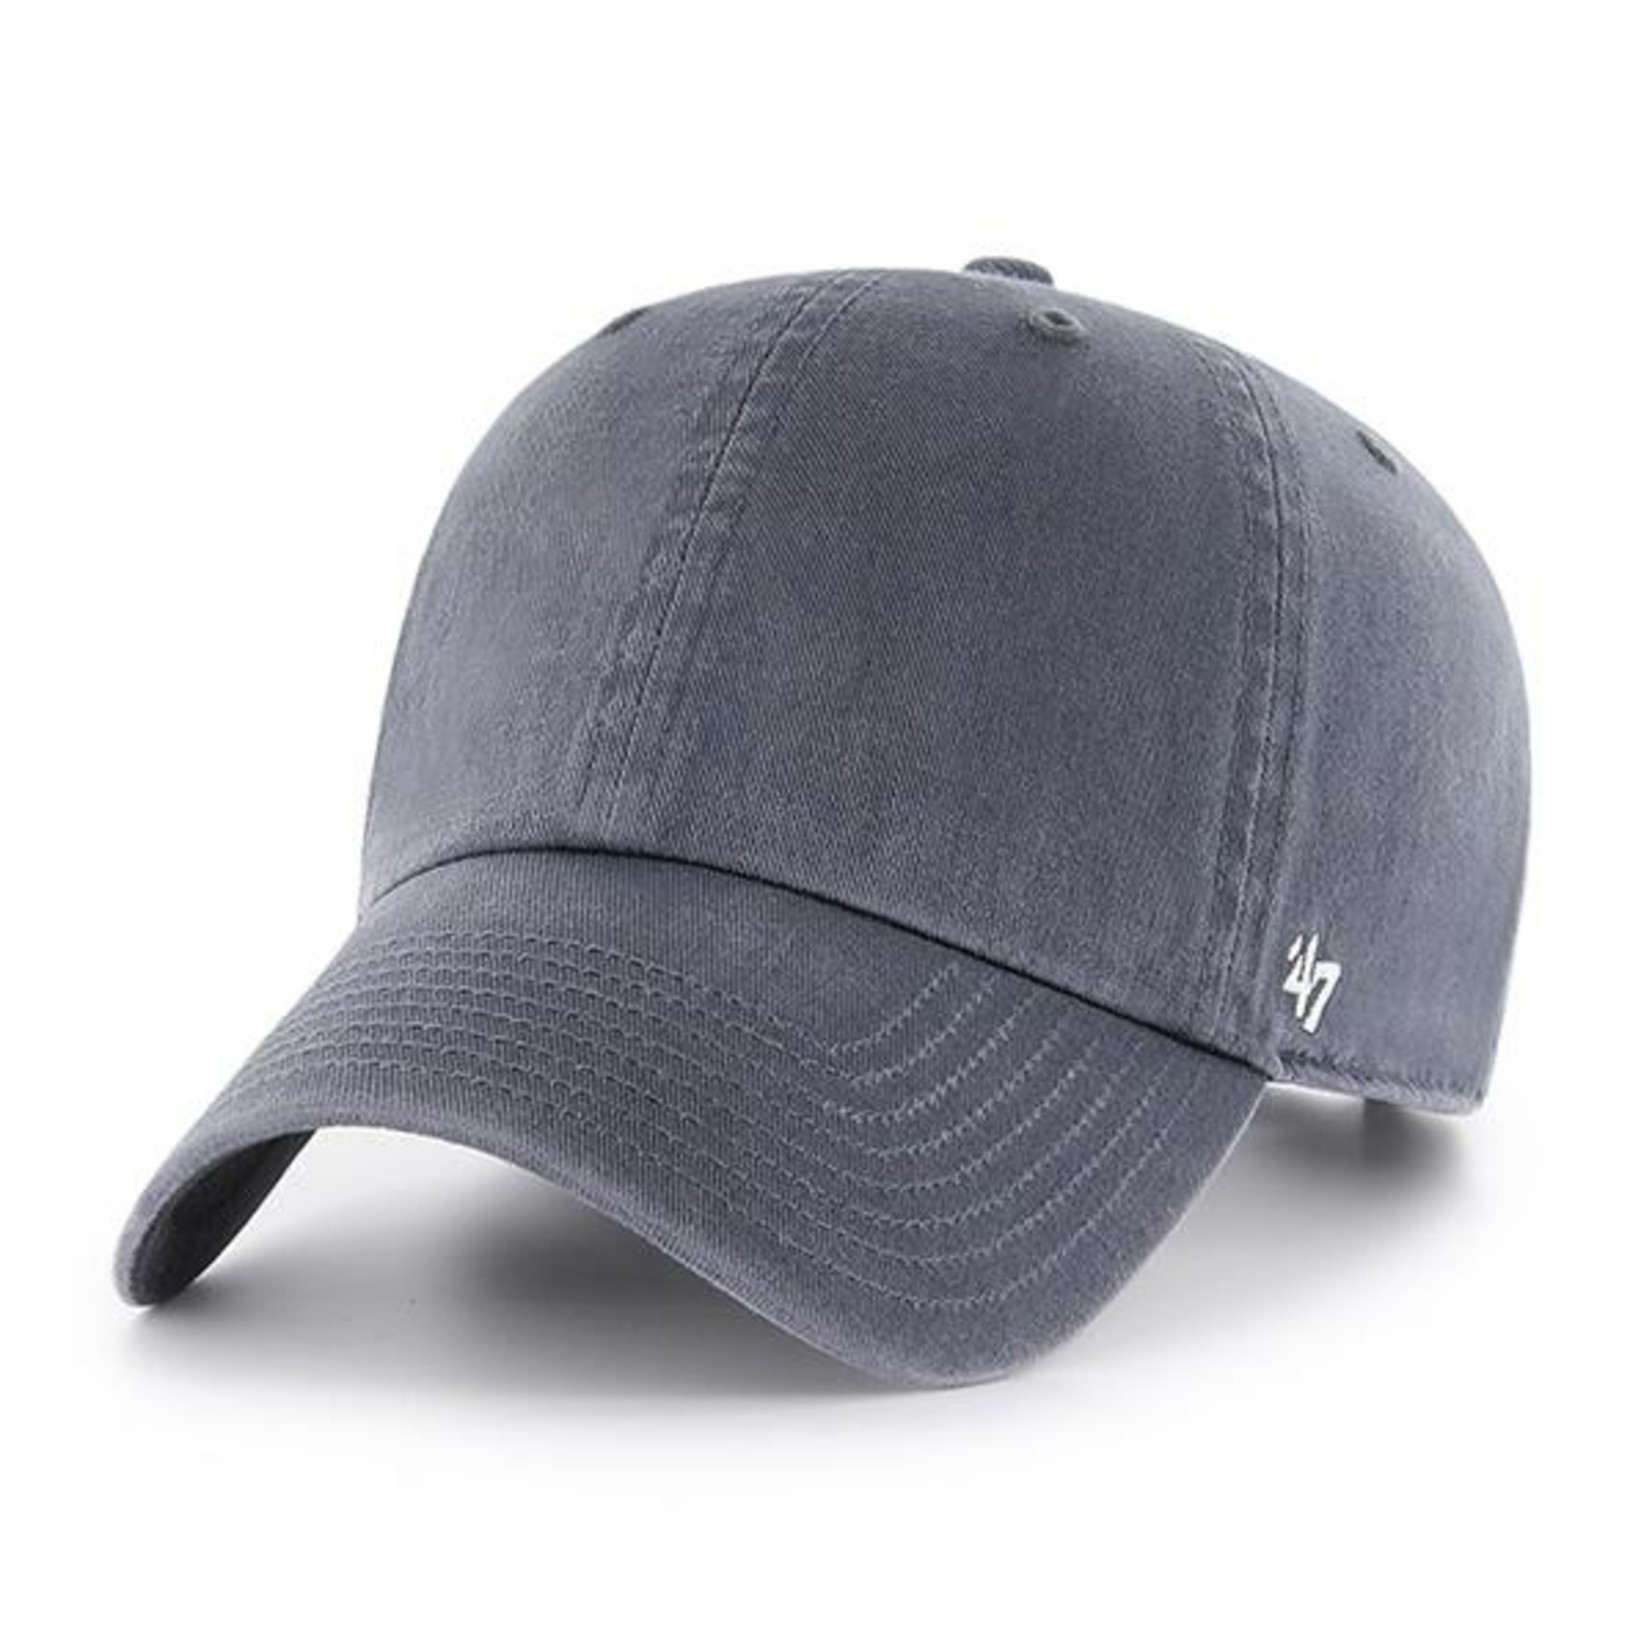 47 Brand Classic Clean Up Baseball Cap - Vintage Navy